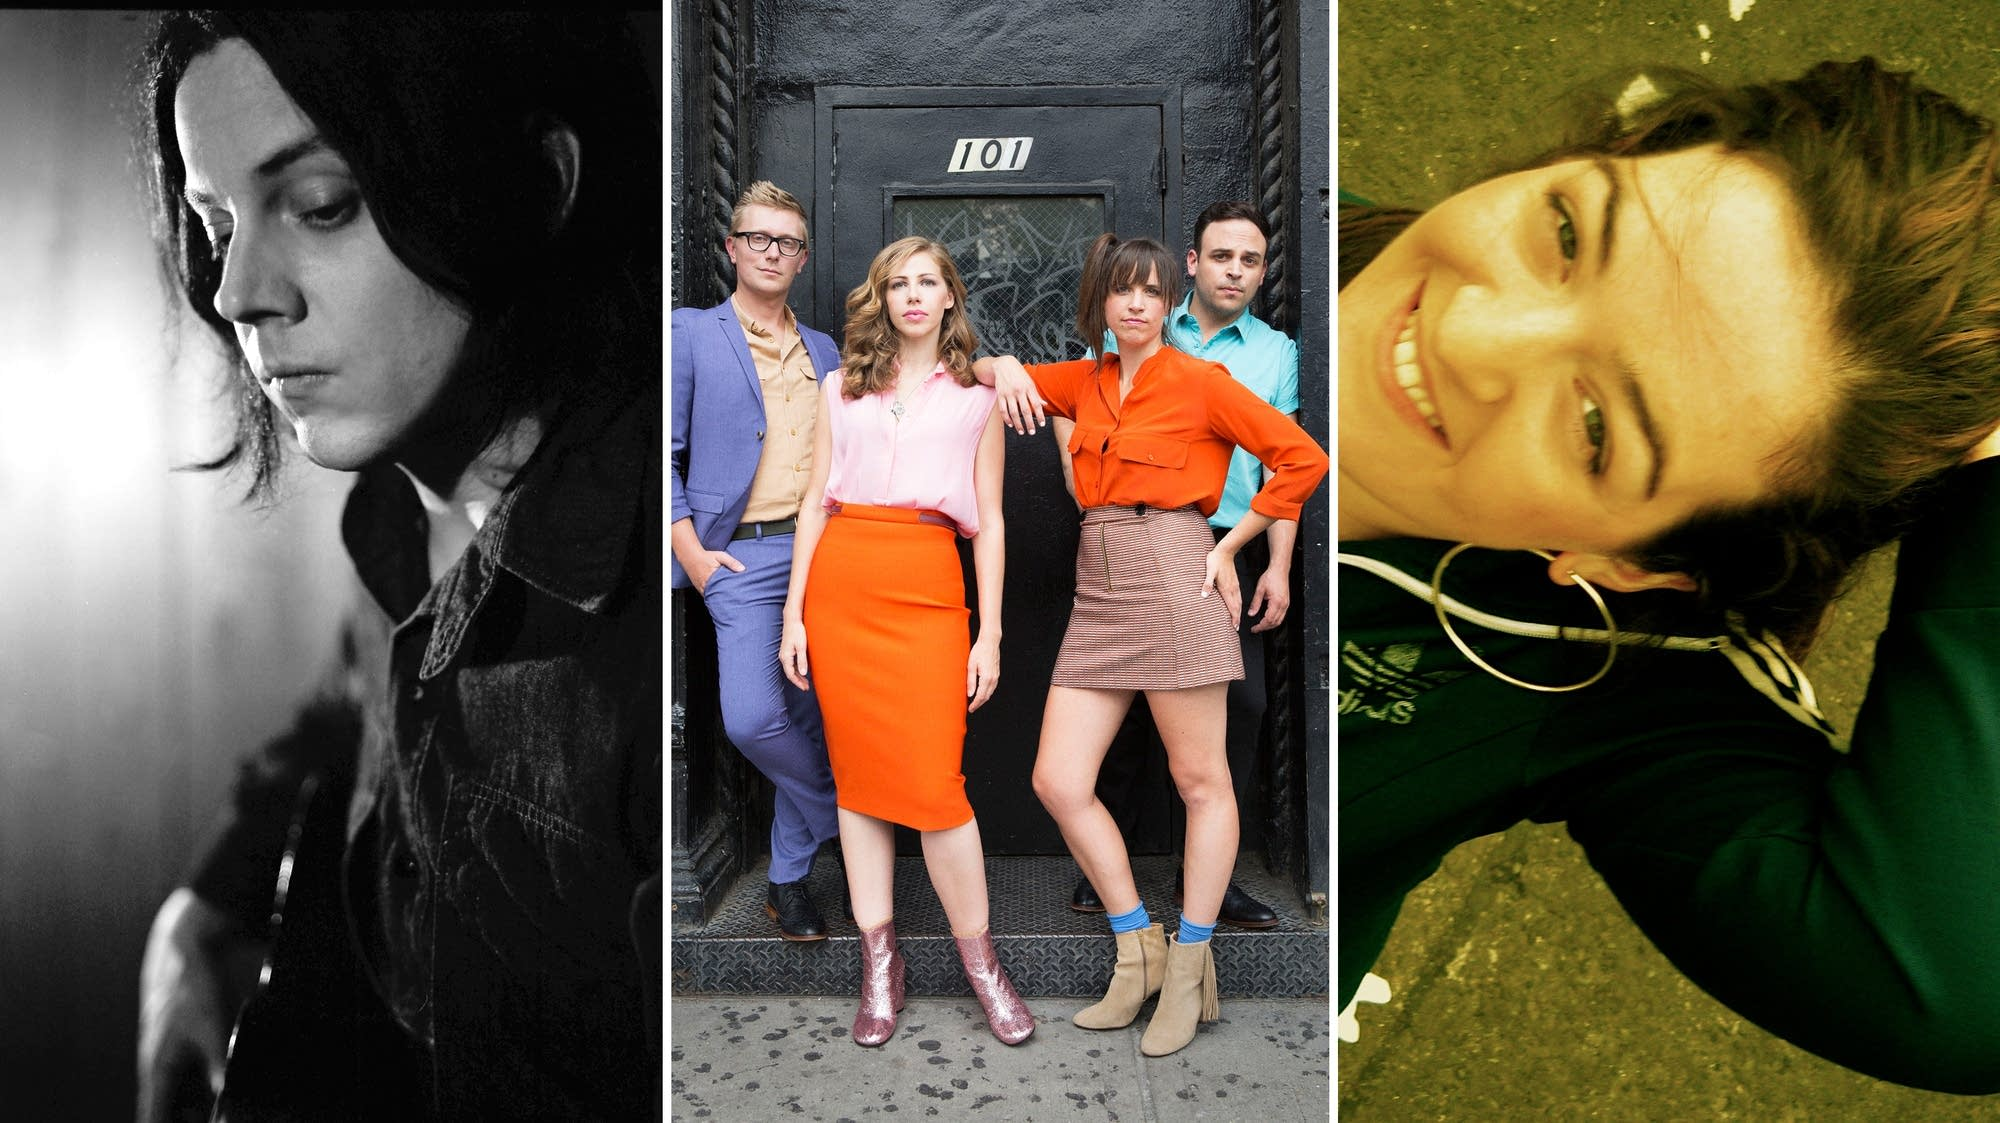 Jack White, Lake Street Dive, Maeve Higgins